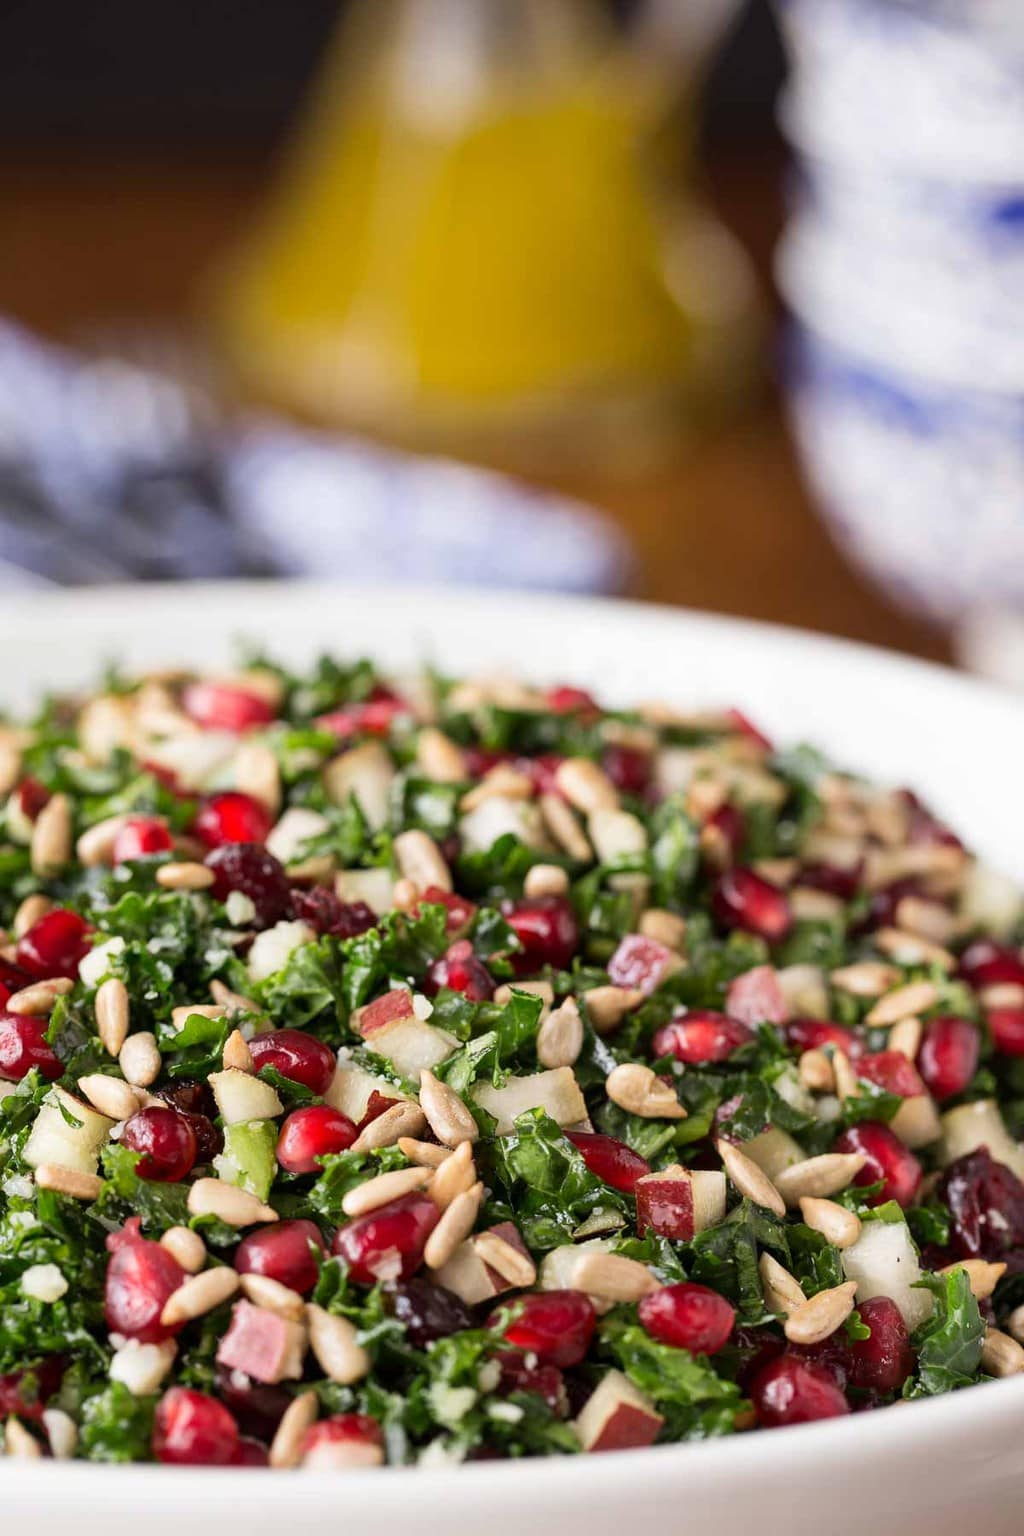 Photo of a white serving bowl filled with Pomegranate Pear Kale Salad.